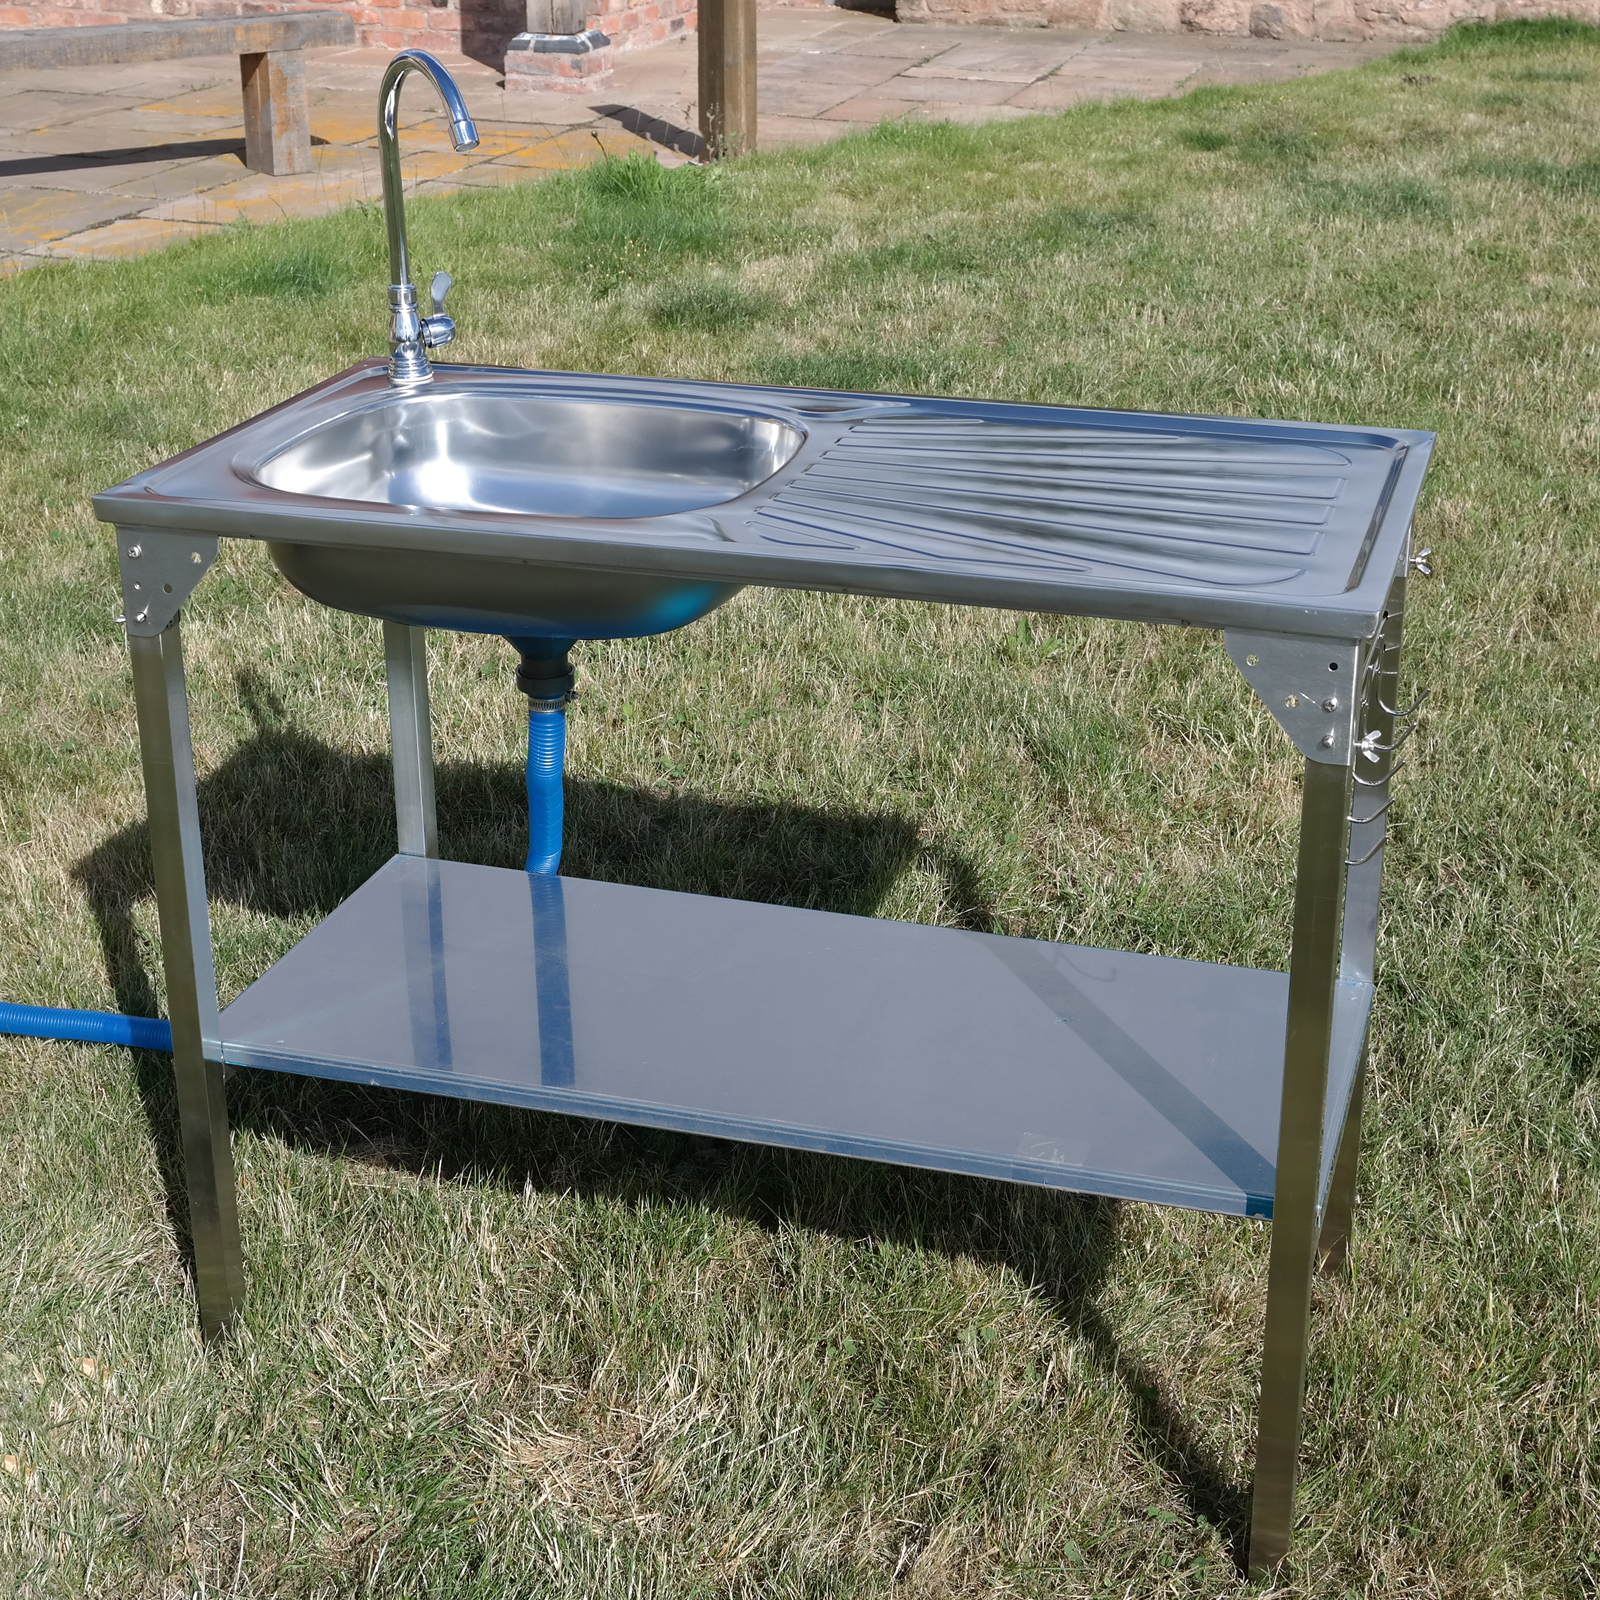 CAMPING SINK OUTDOOR KITCHEN STAINLESS STEEL DRAINING